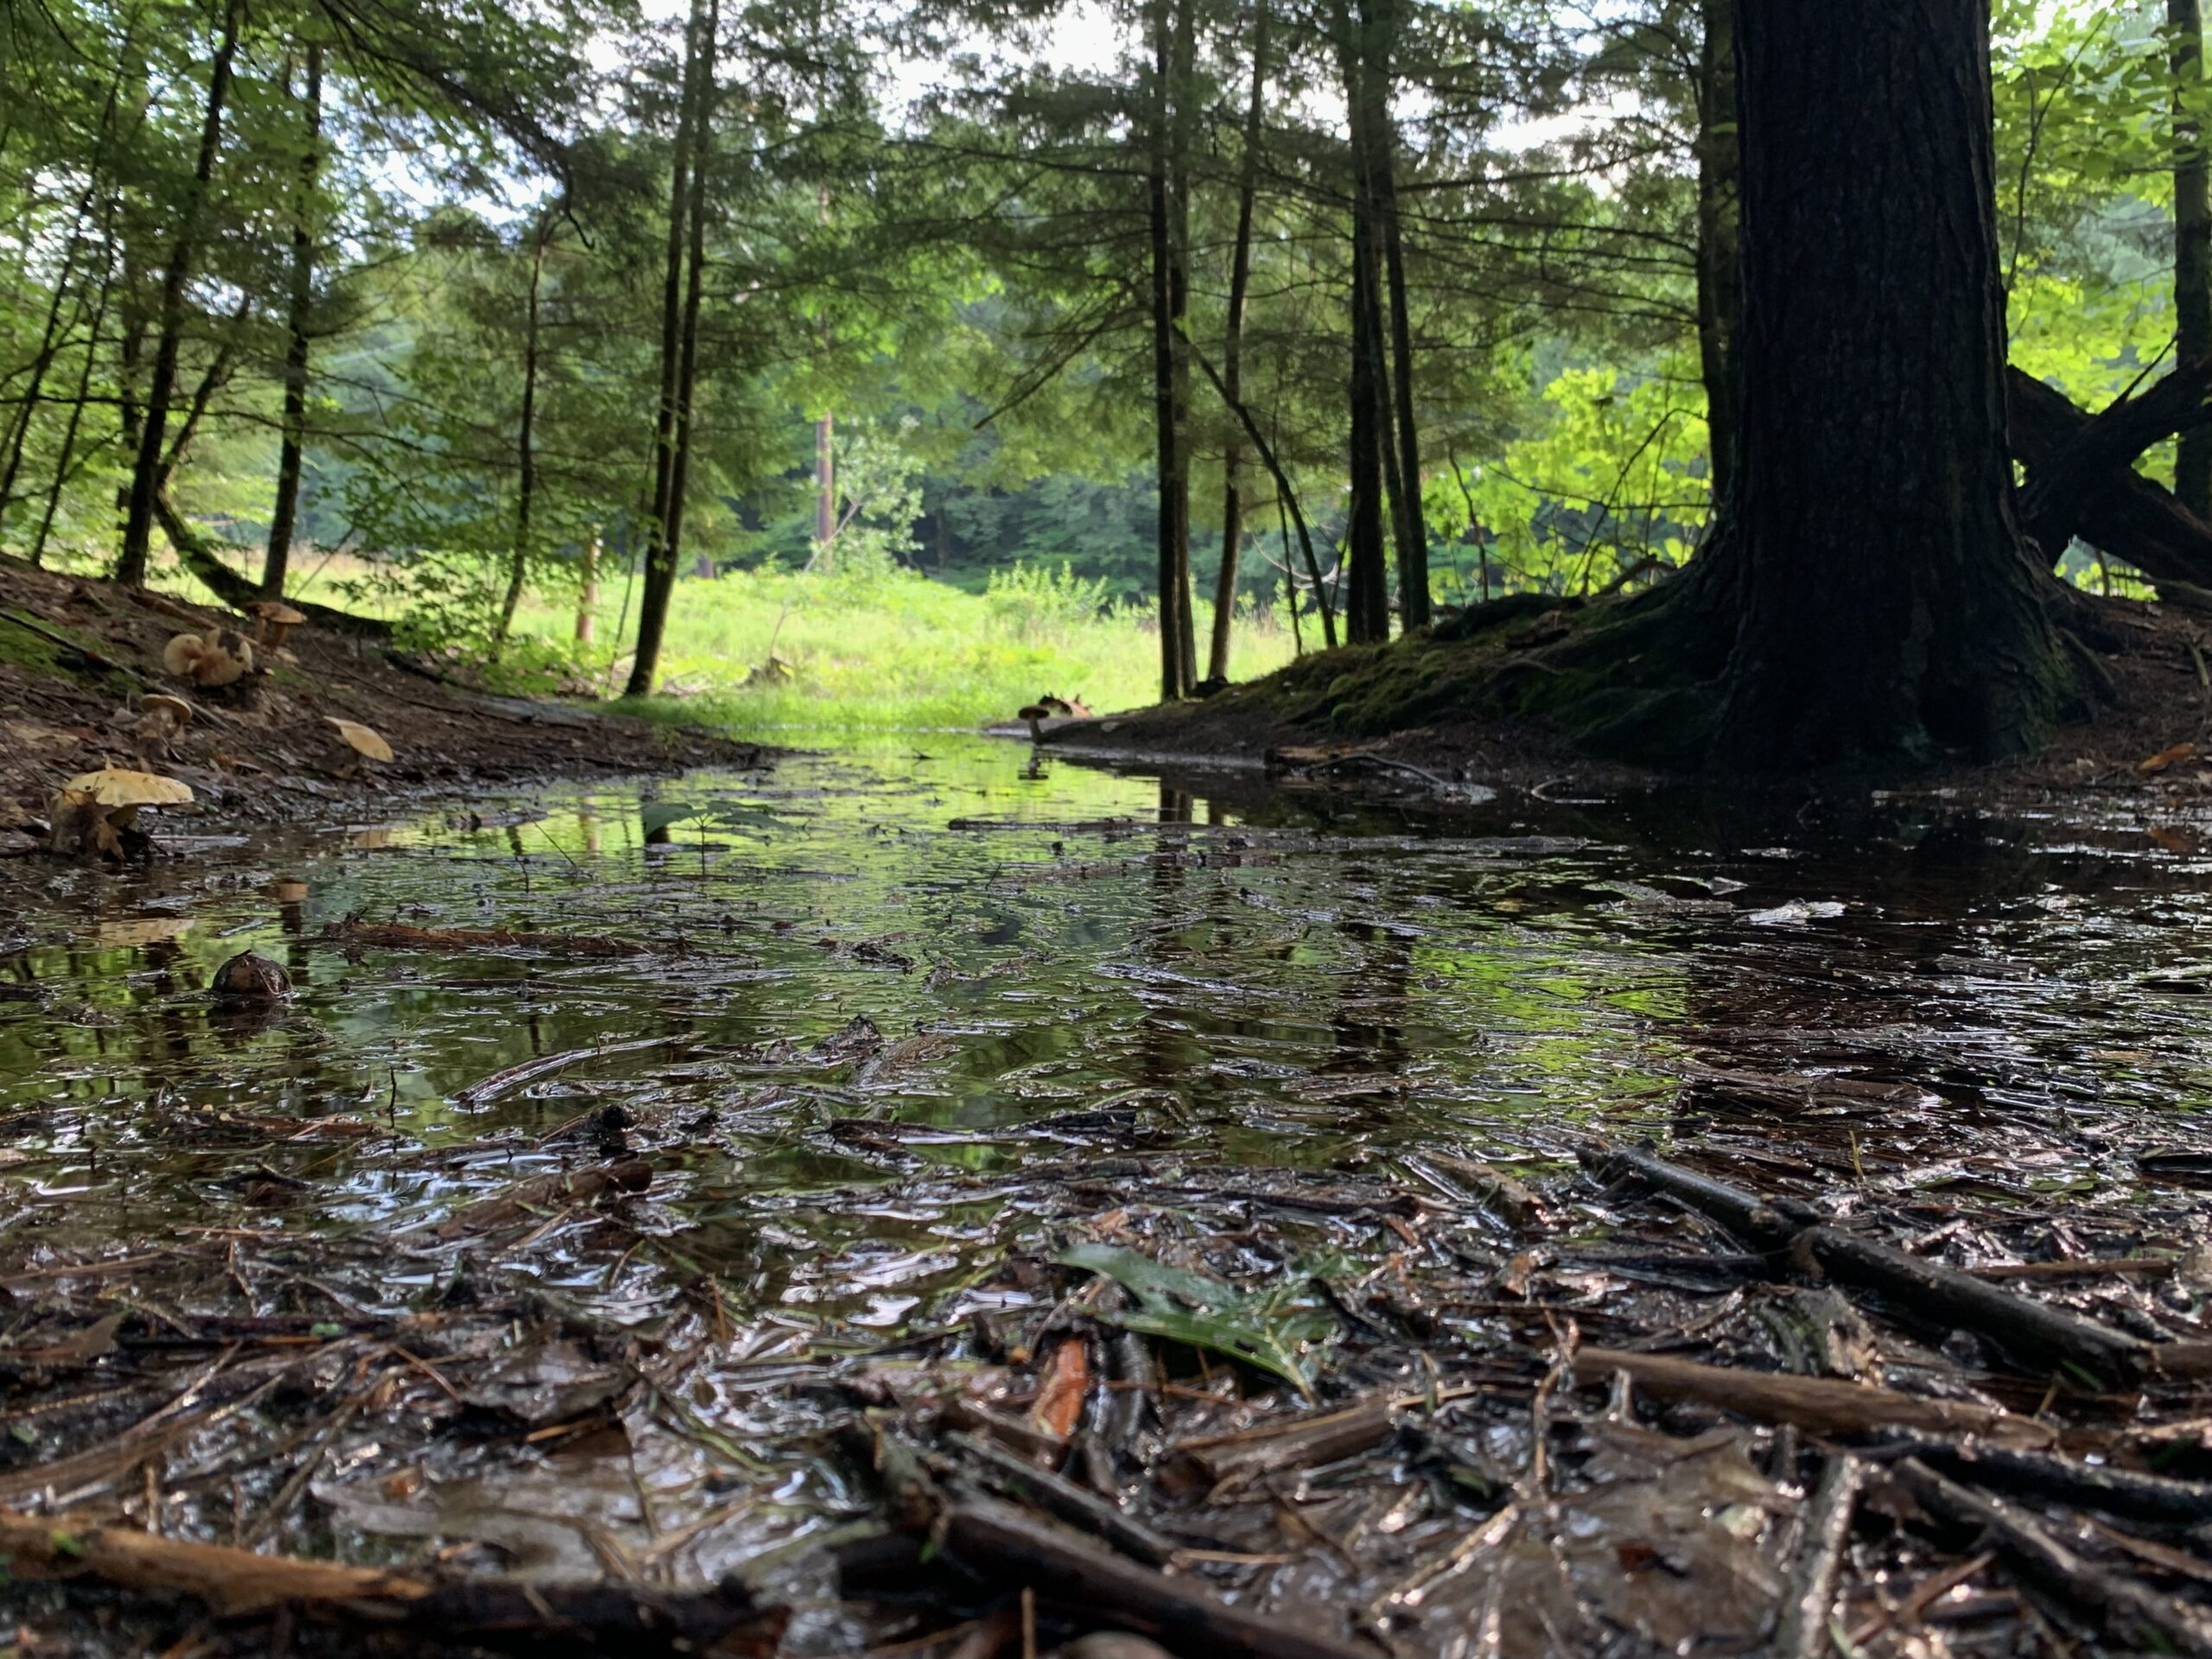 Despite the rain, drought concerns linger: 'We're not out of the woods yet'